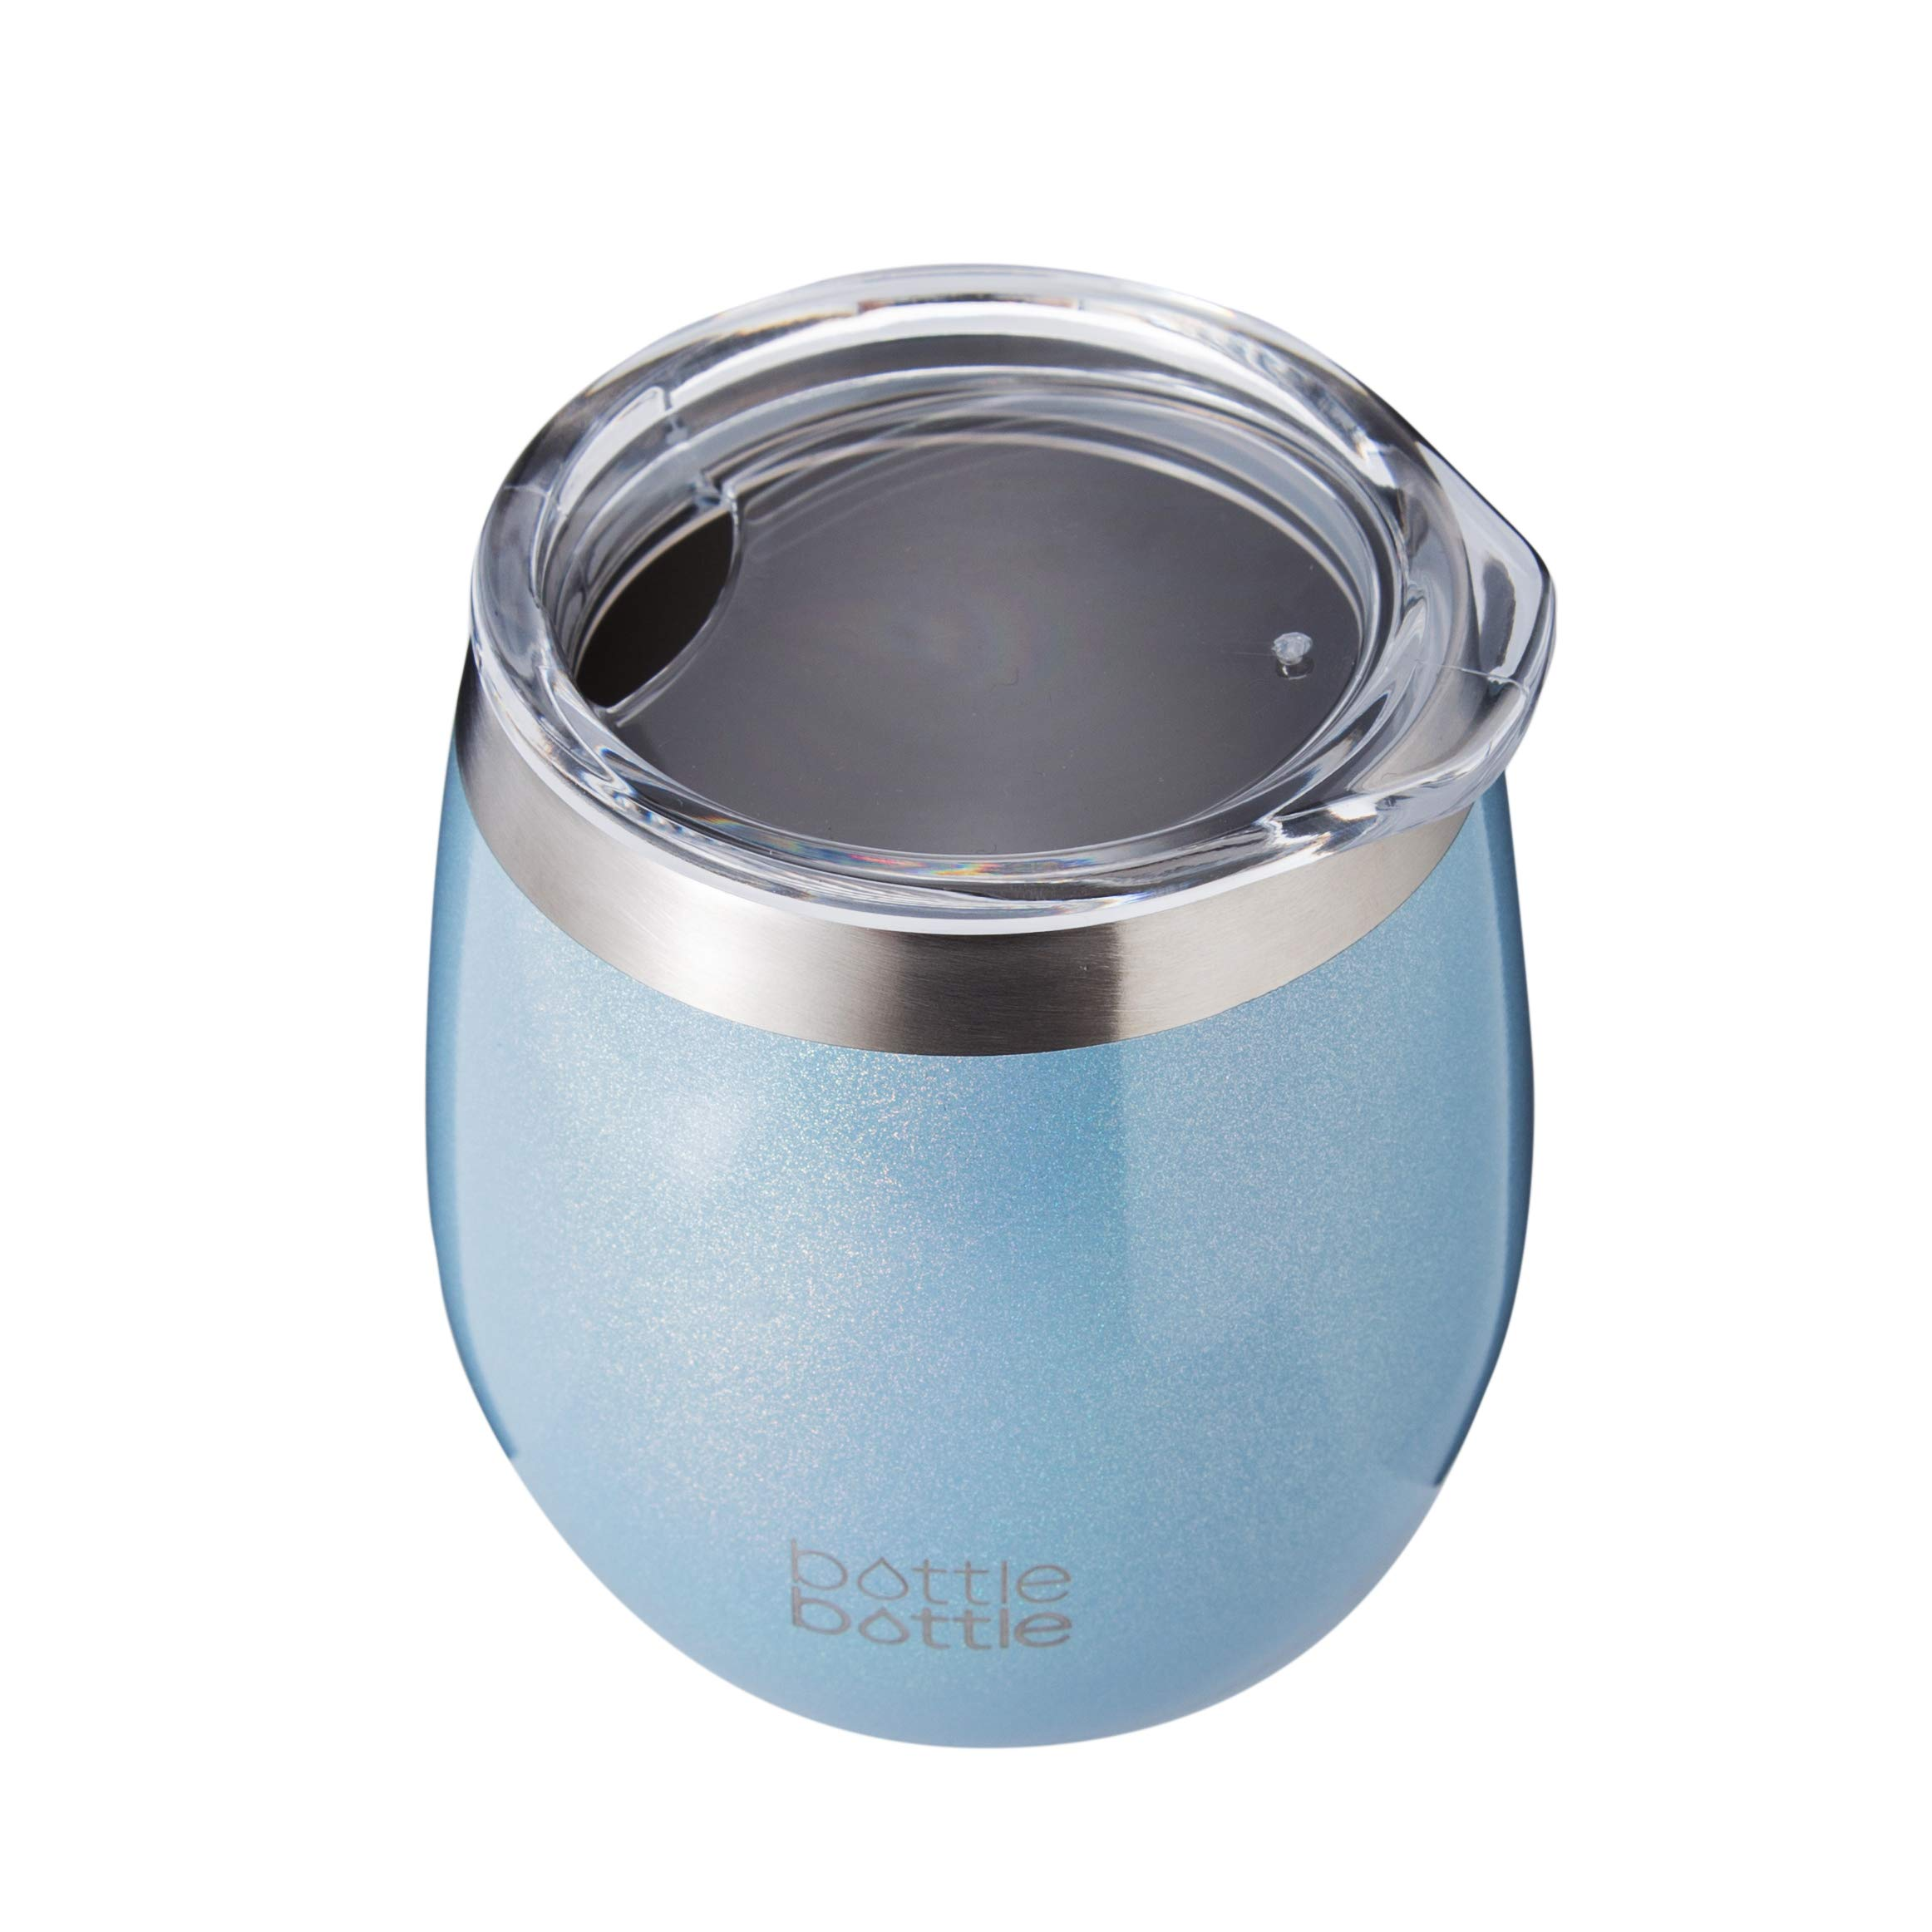 bottlebottle-Reusable-Coffee-Cup-with-lid-8oz240ml-Stainless-steel-Vacuum-Insulation-Small-Thermal-Travel-Water-Cup